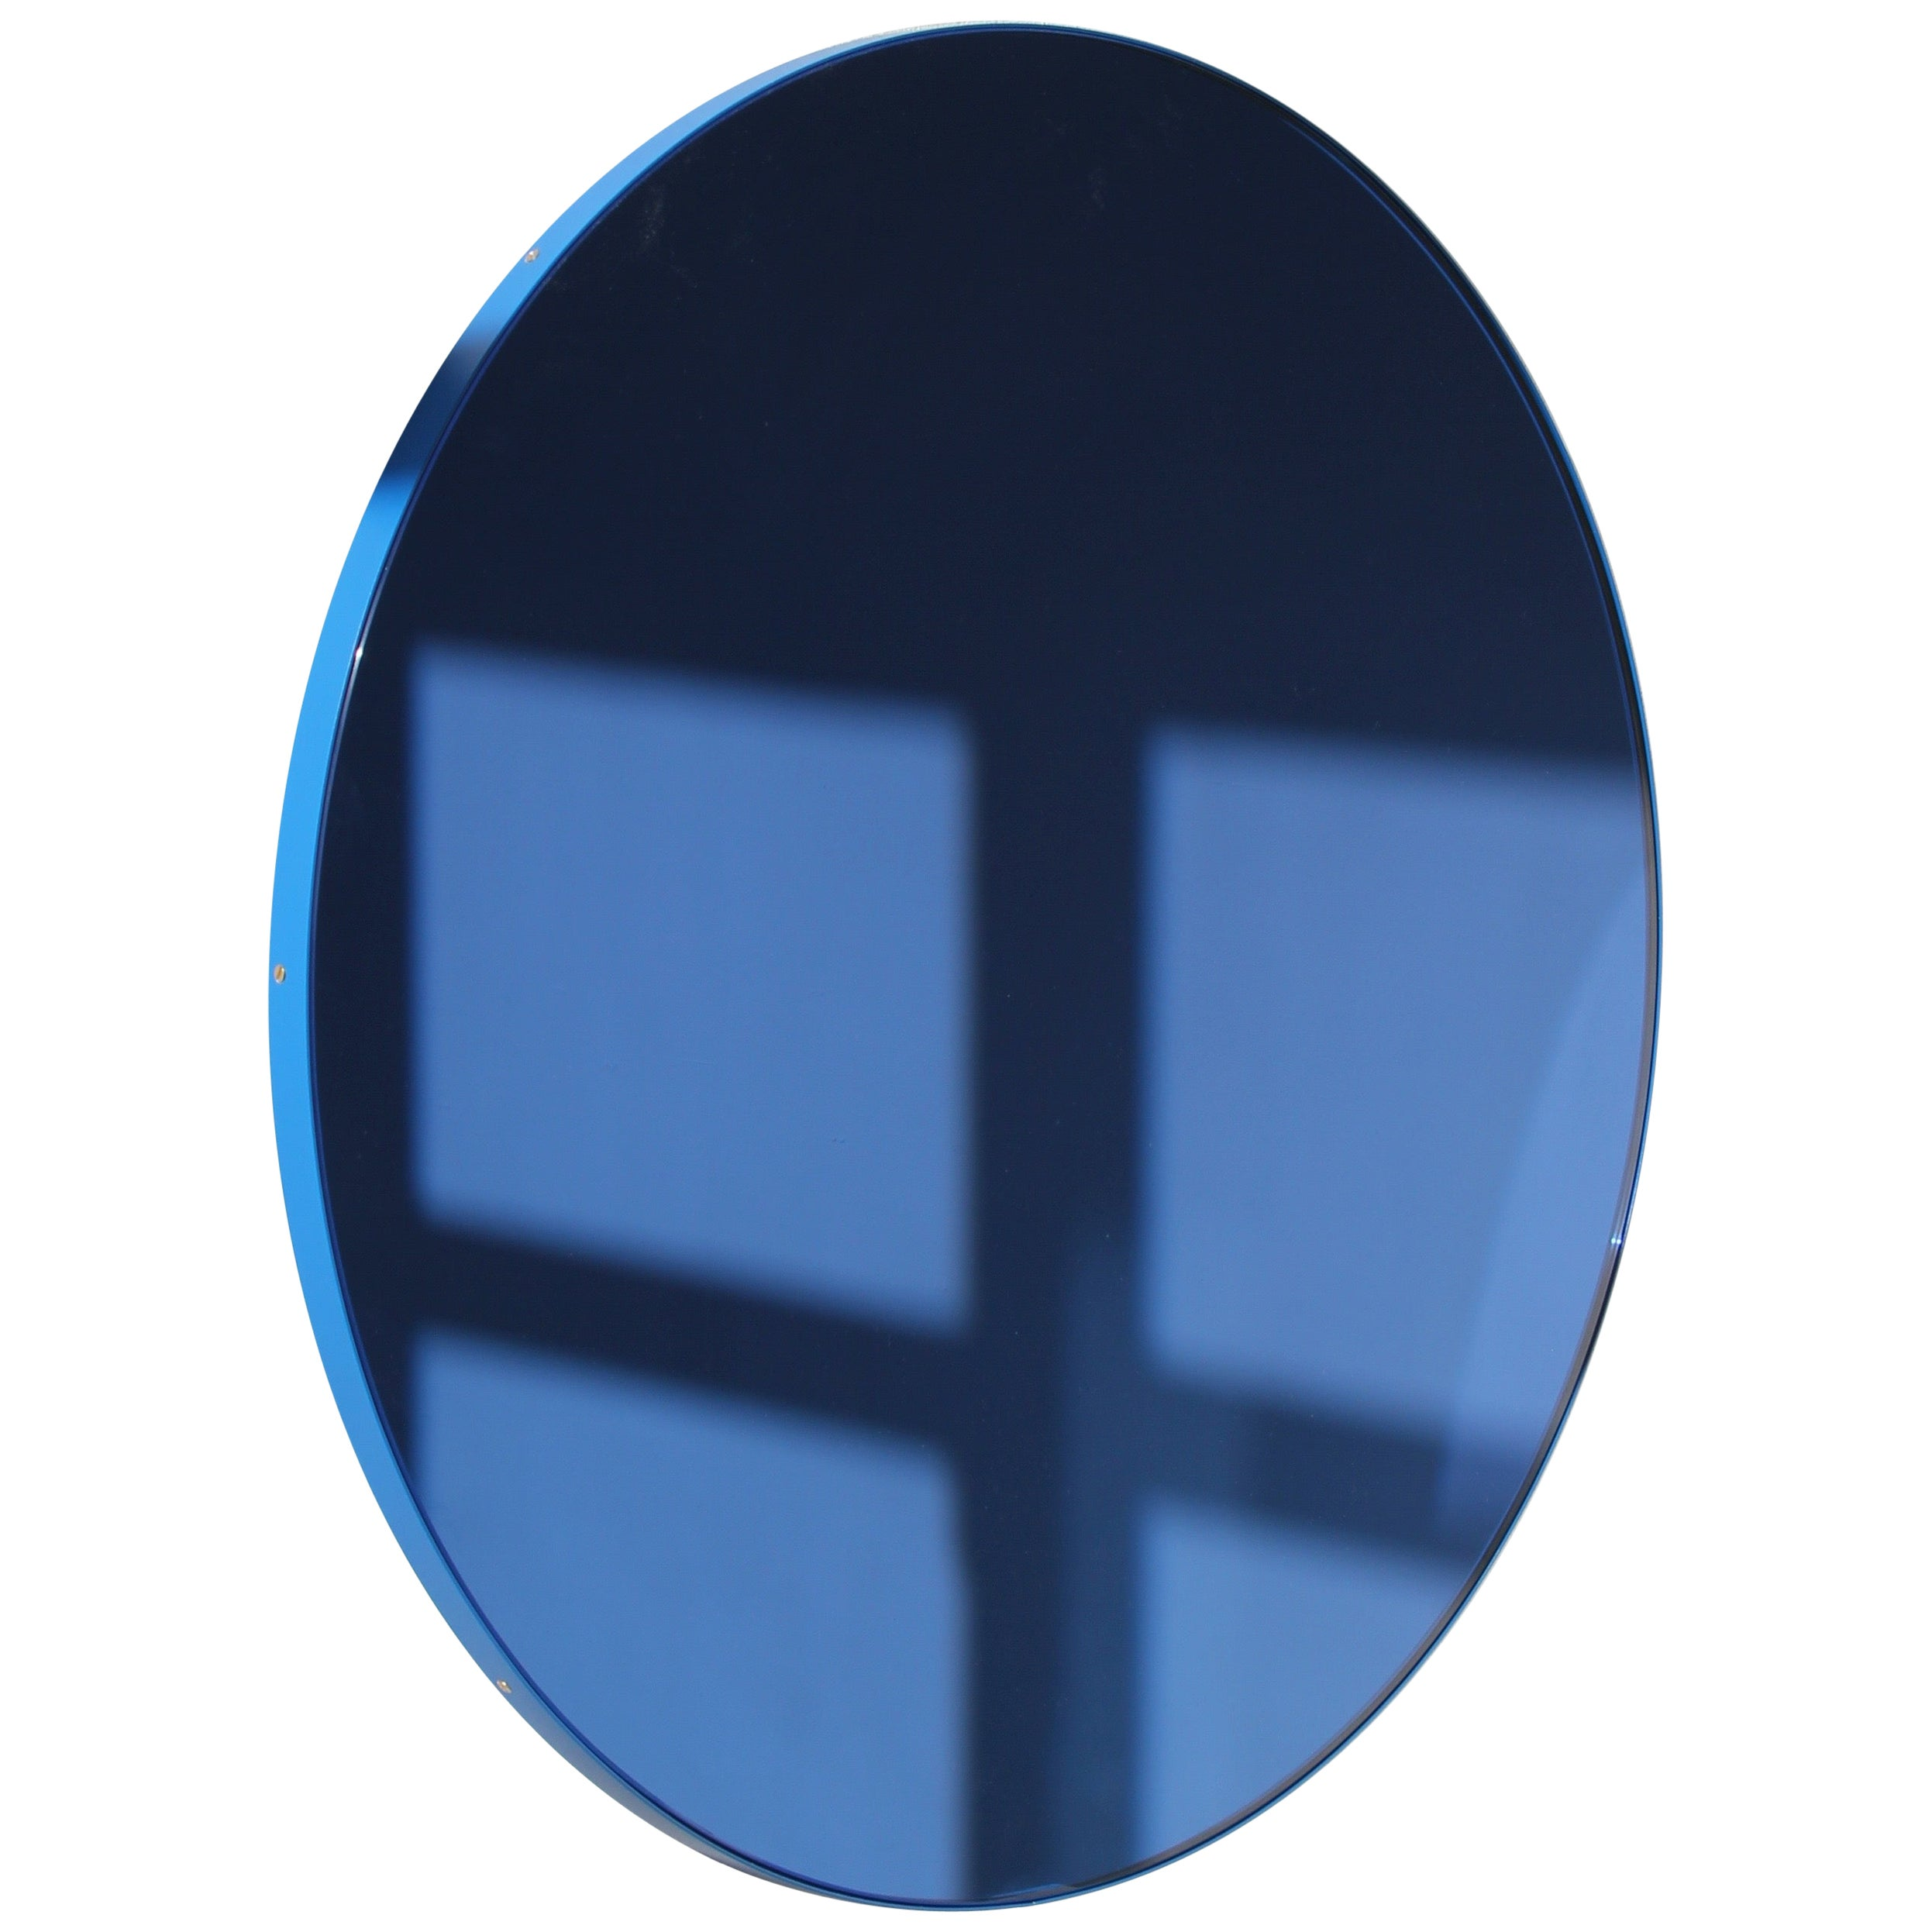 Orbis™ Blue Tinted Decorative Round Mirror with a Blue Frame - Large